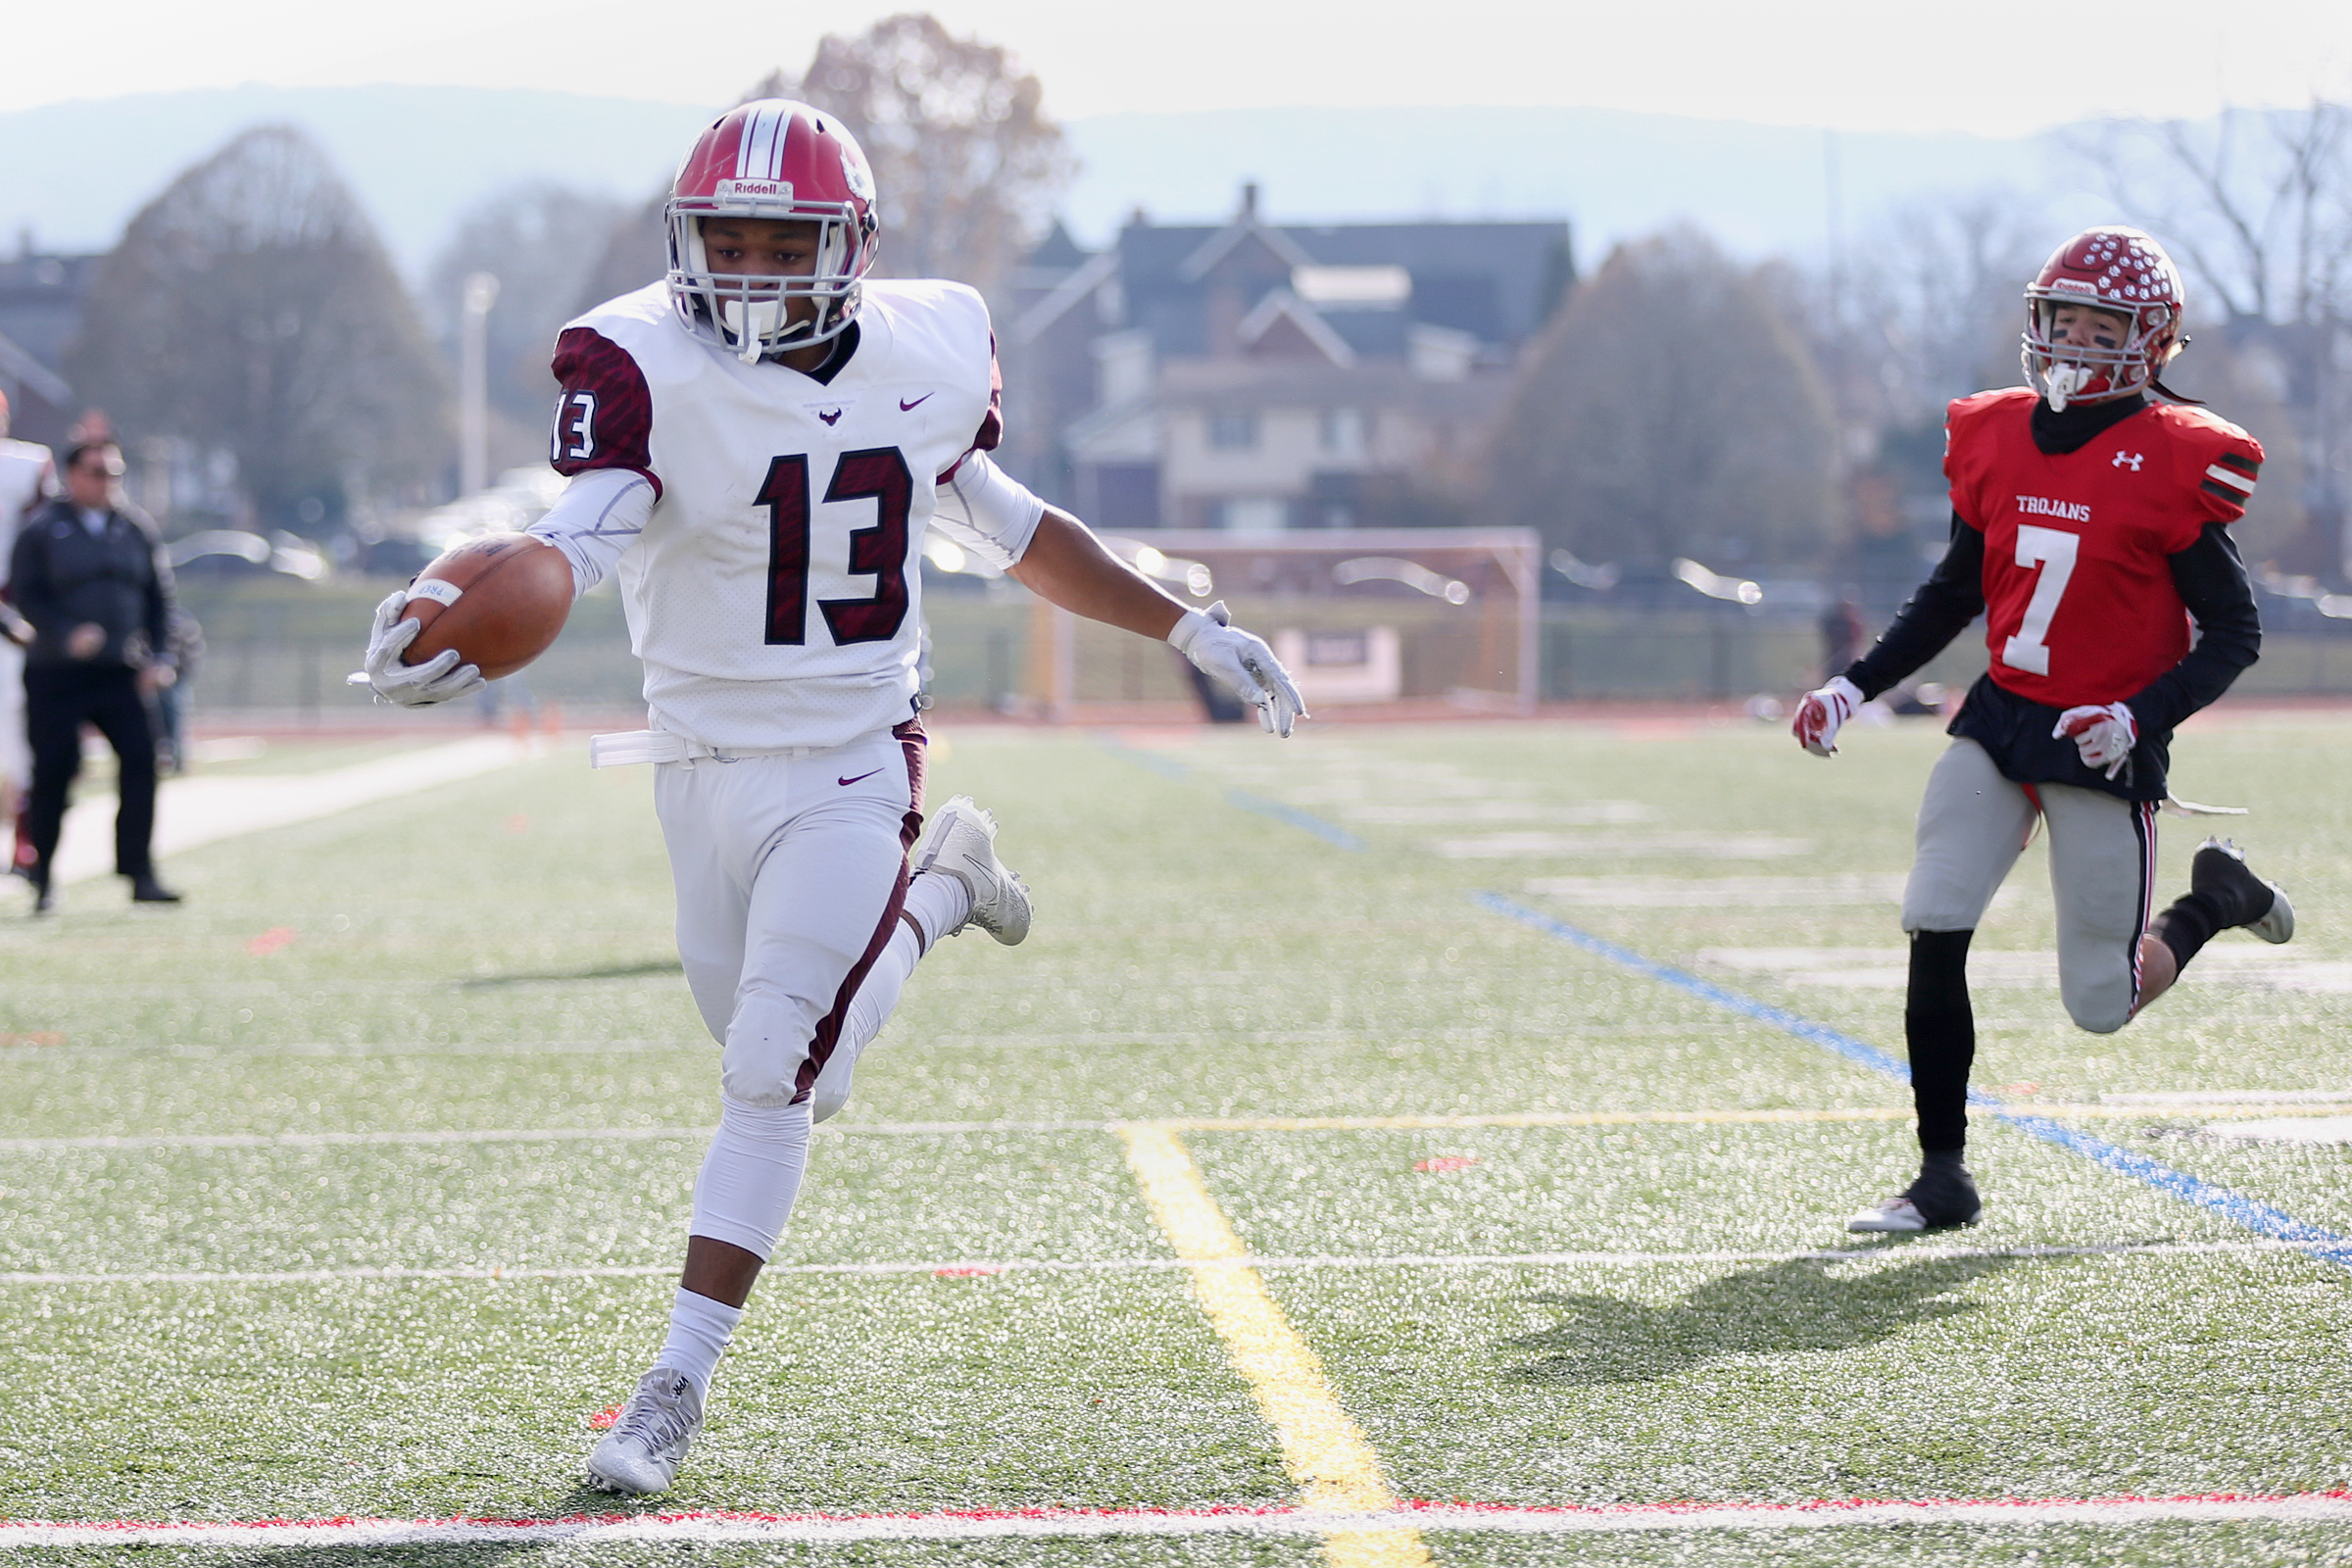 St. Joseph´s Prep´s Marques Mason (left) outruns Parkland´s Cole Wetherhold to score a touchdown in the first quarter of their PIAA Class 6A quarterfinal game.